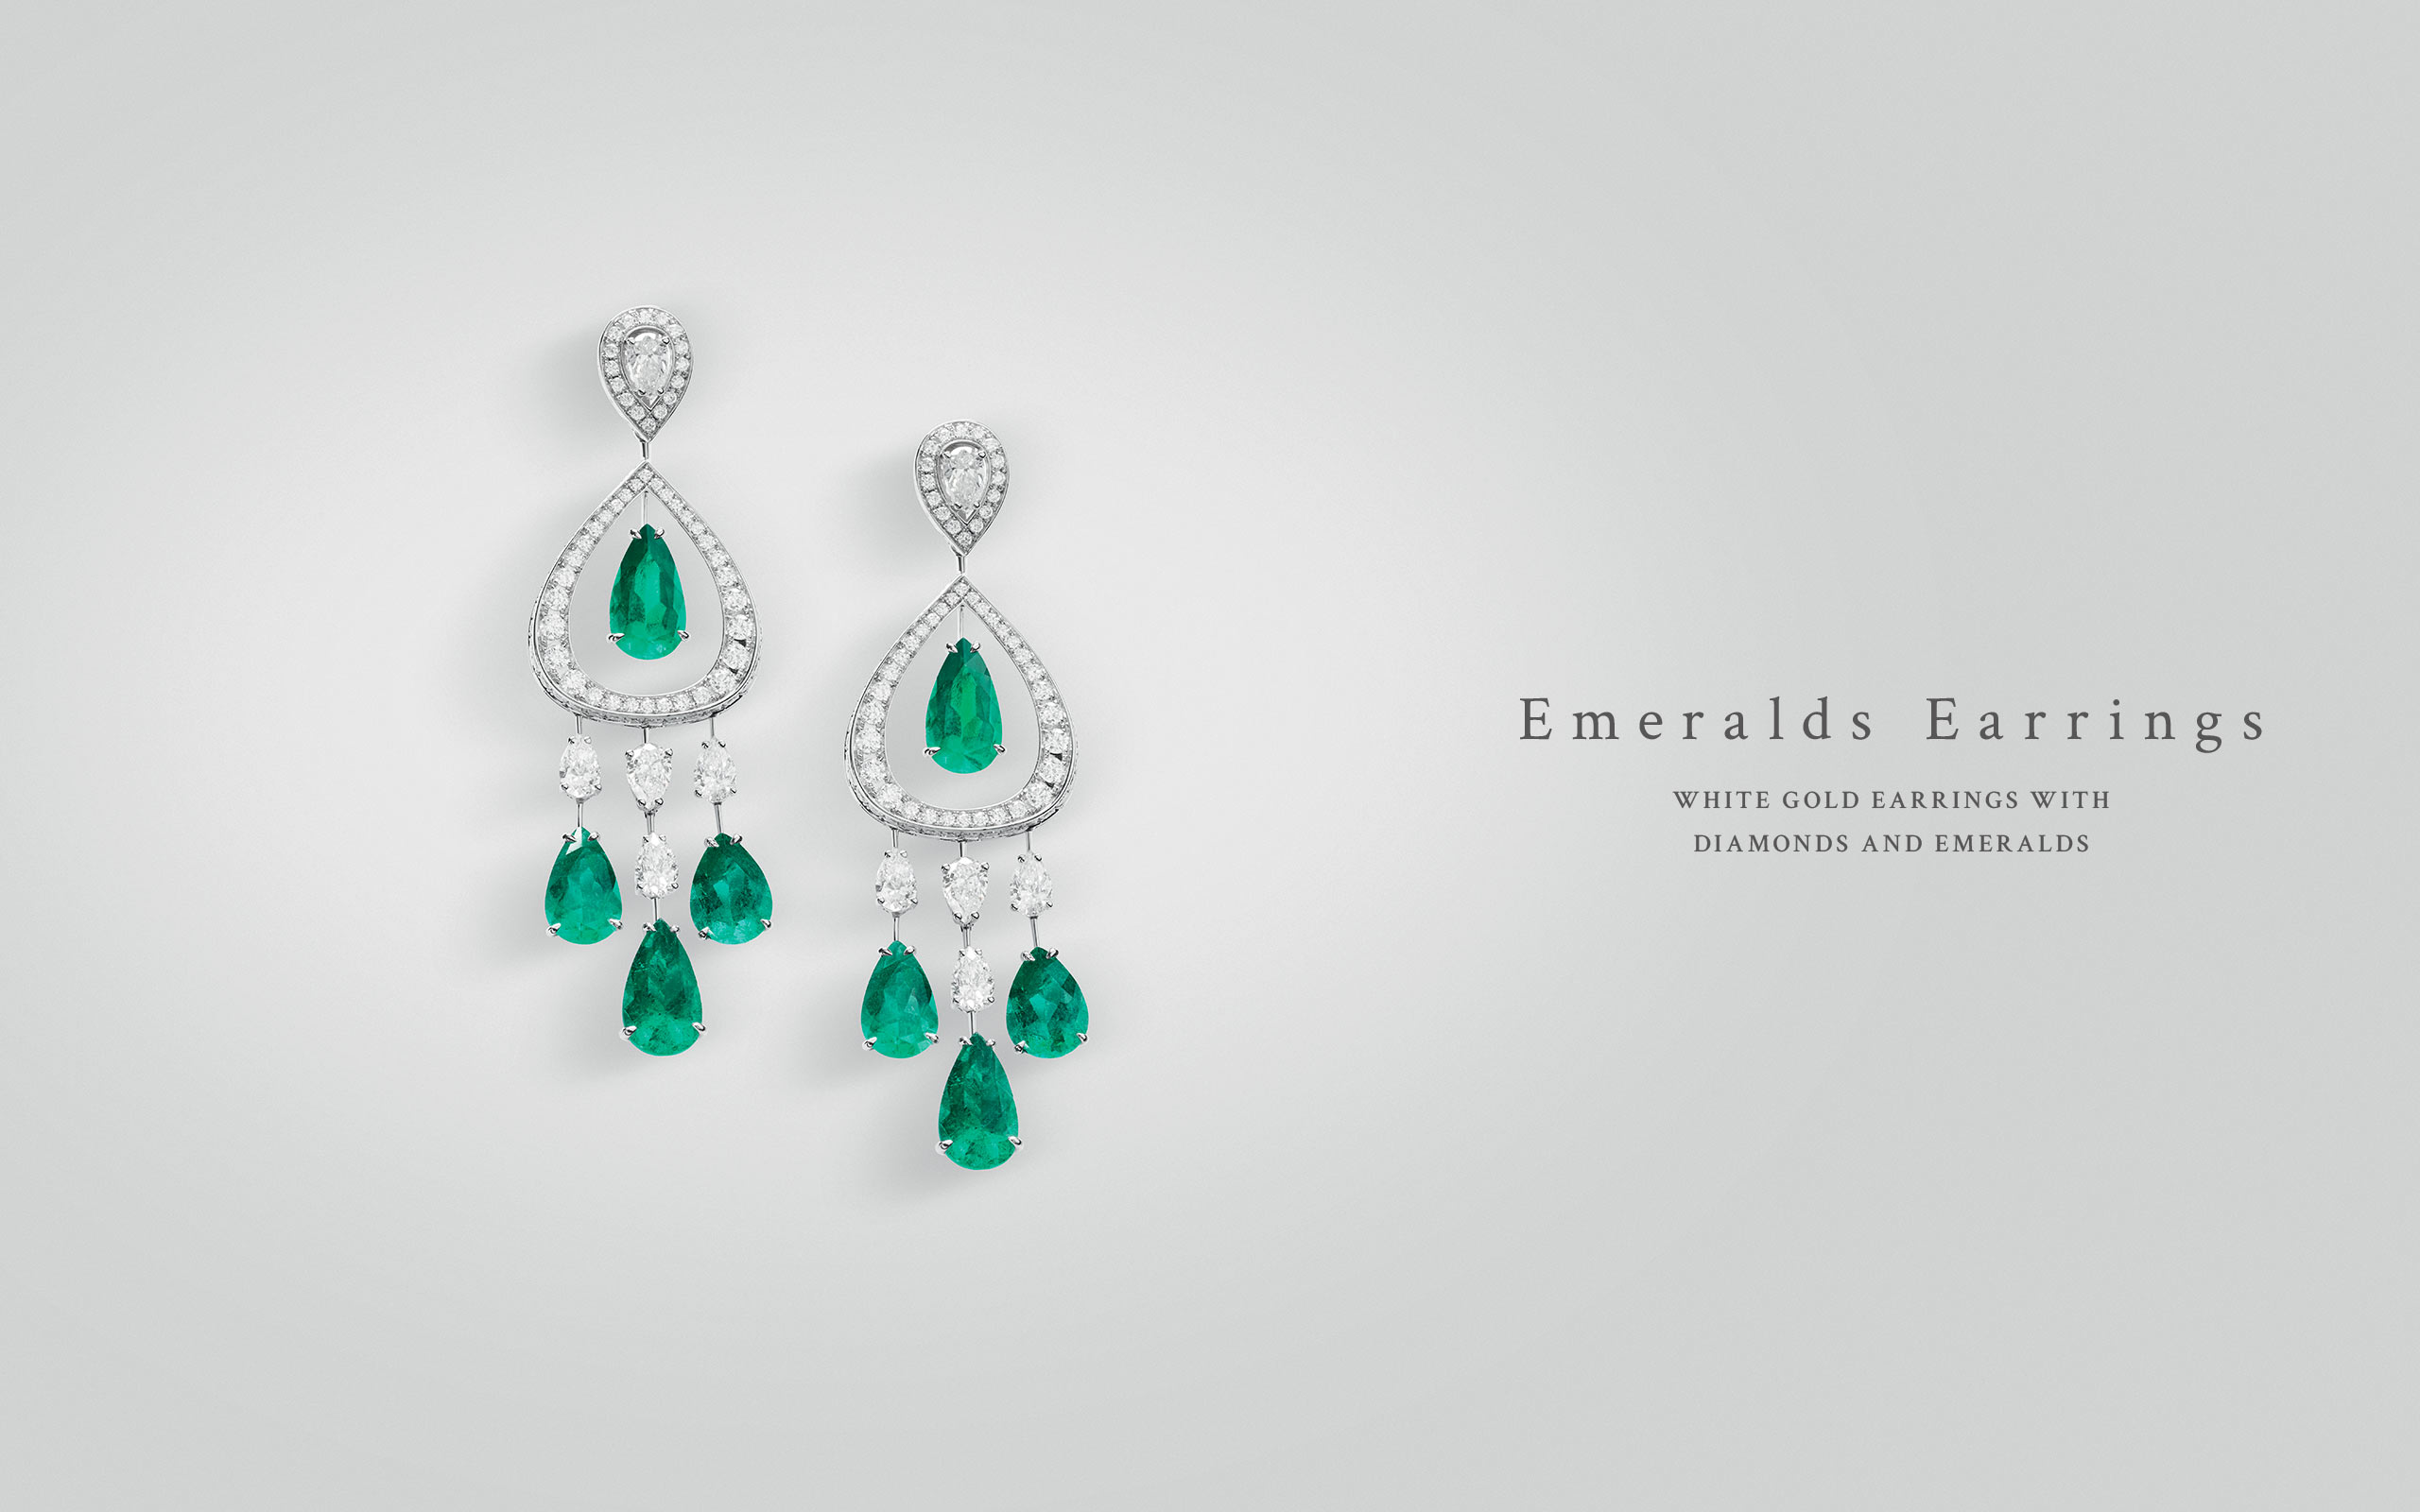 Emeralds Earrings 05 | Maria Gaspari